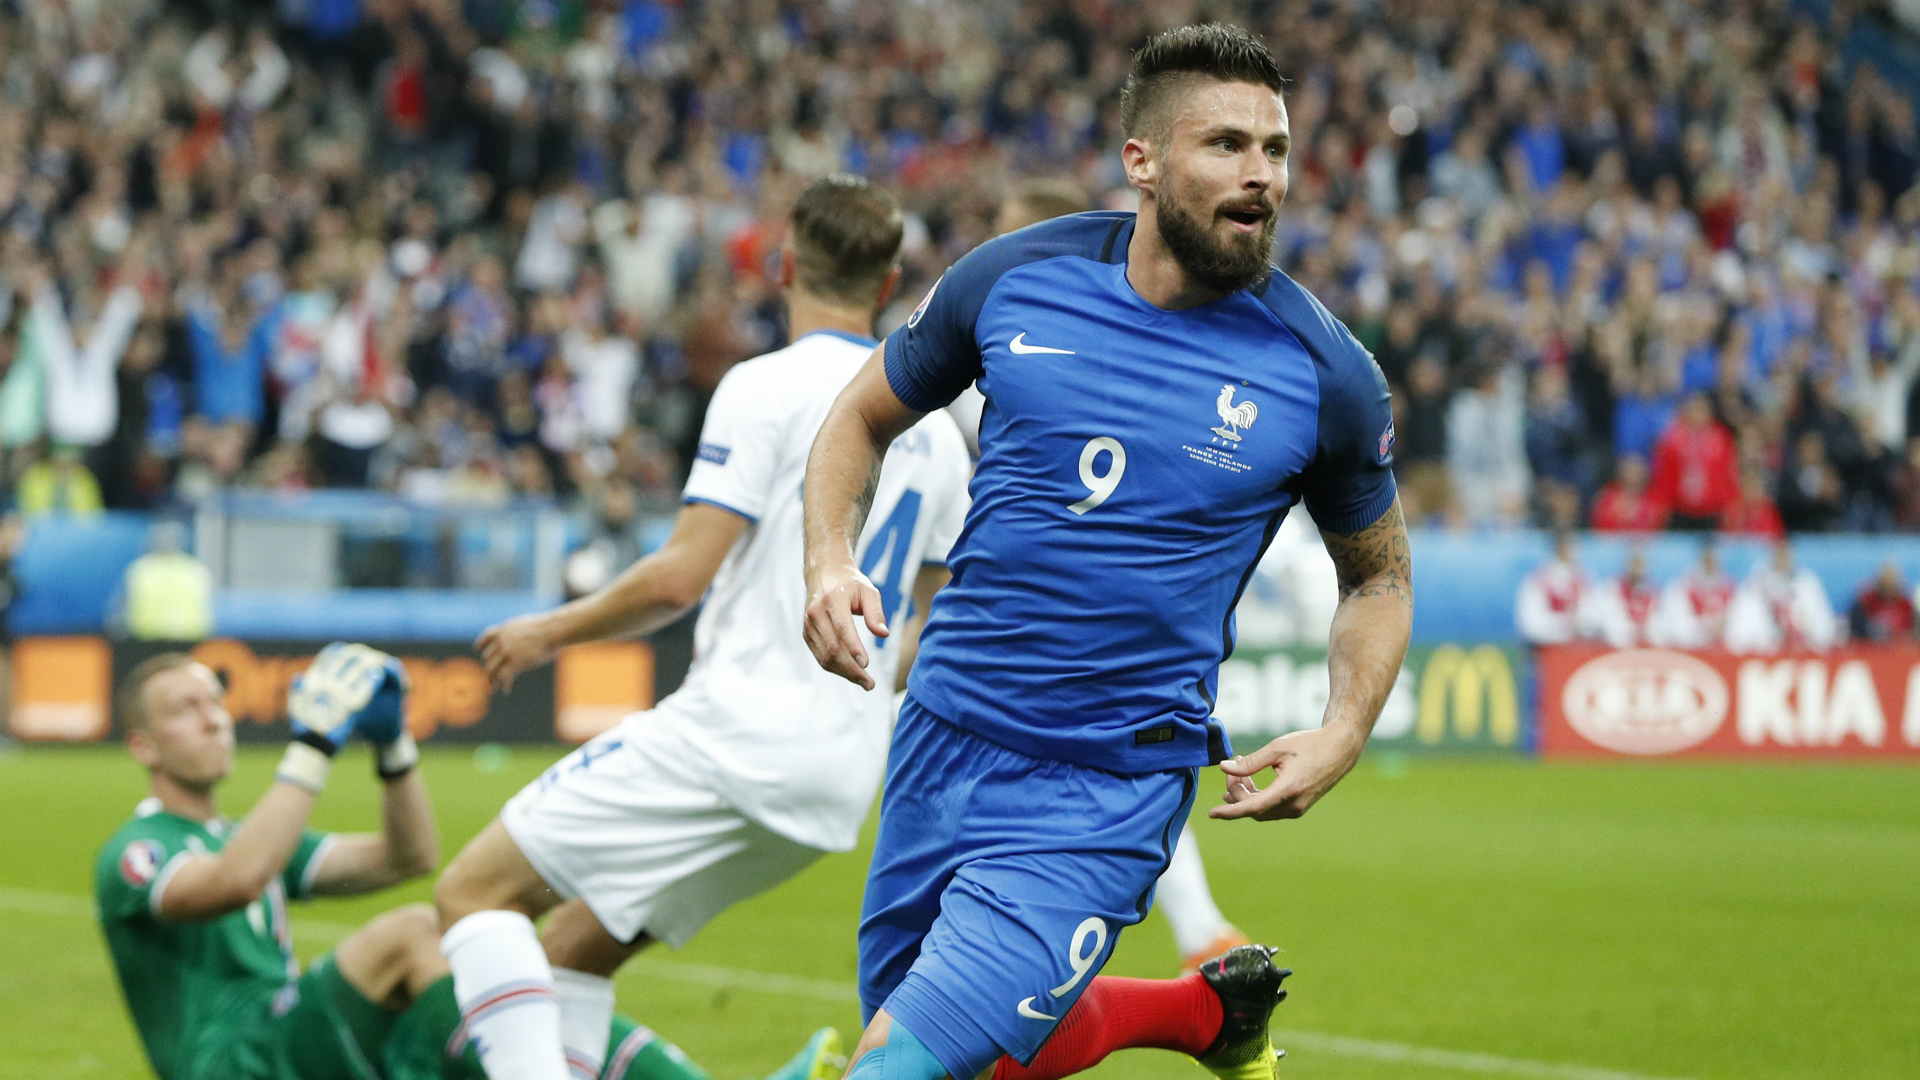 Euro 2016: Giroud brace seals France's win over Iceland